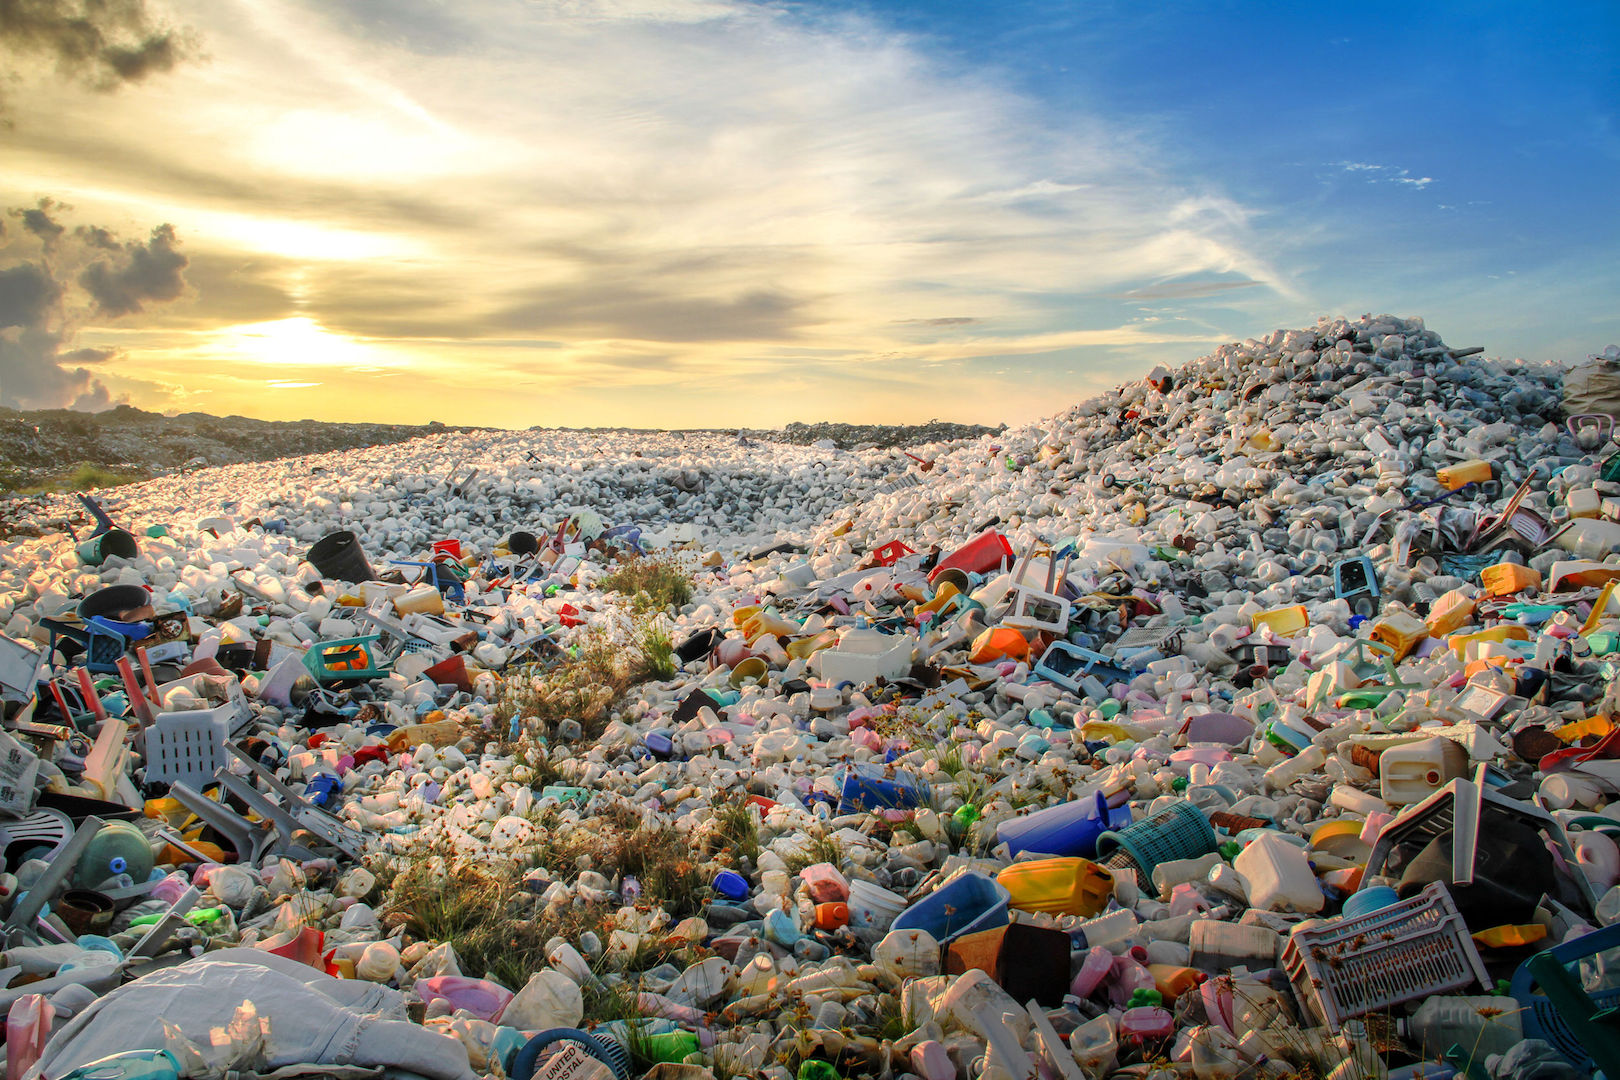 CSIRO gets serious about tackling Australia's 67 million tonnes of annual waste